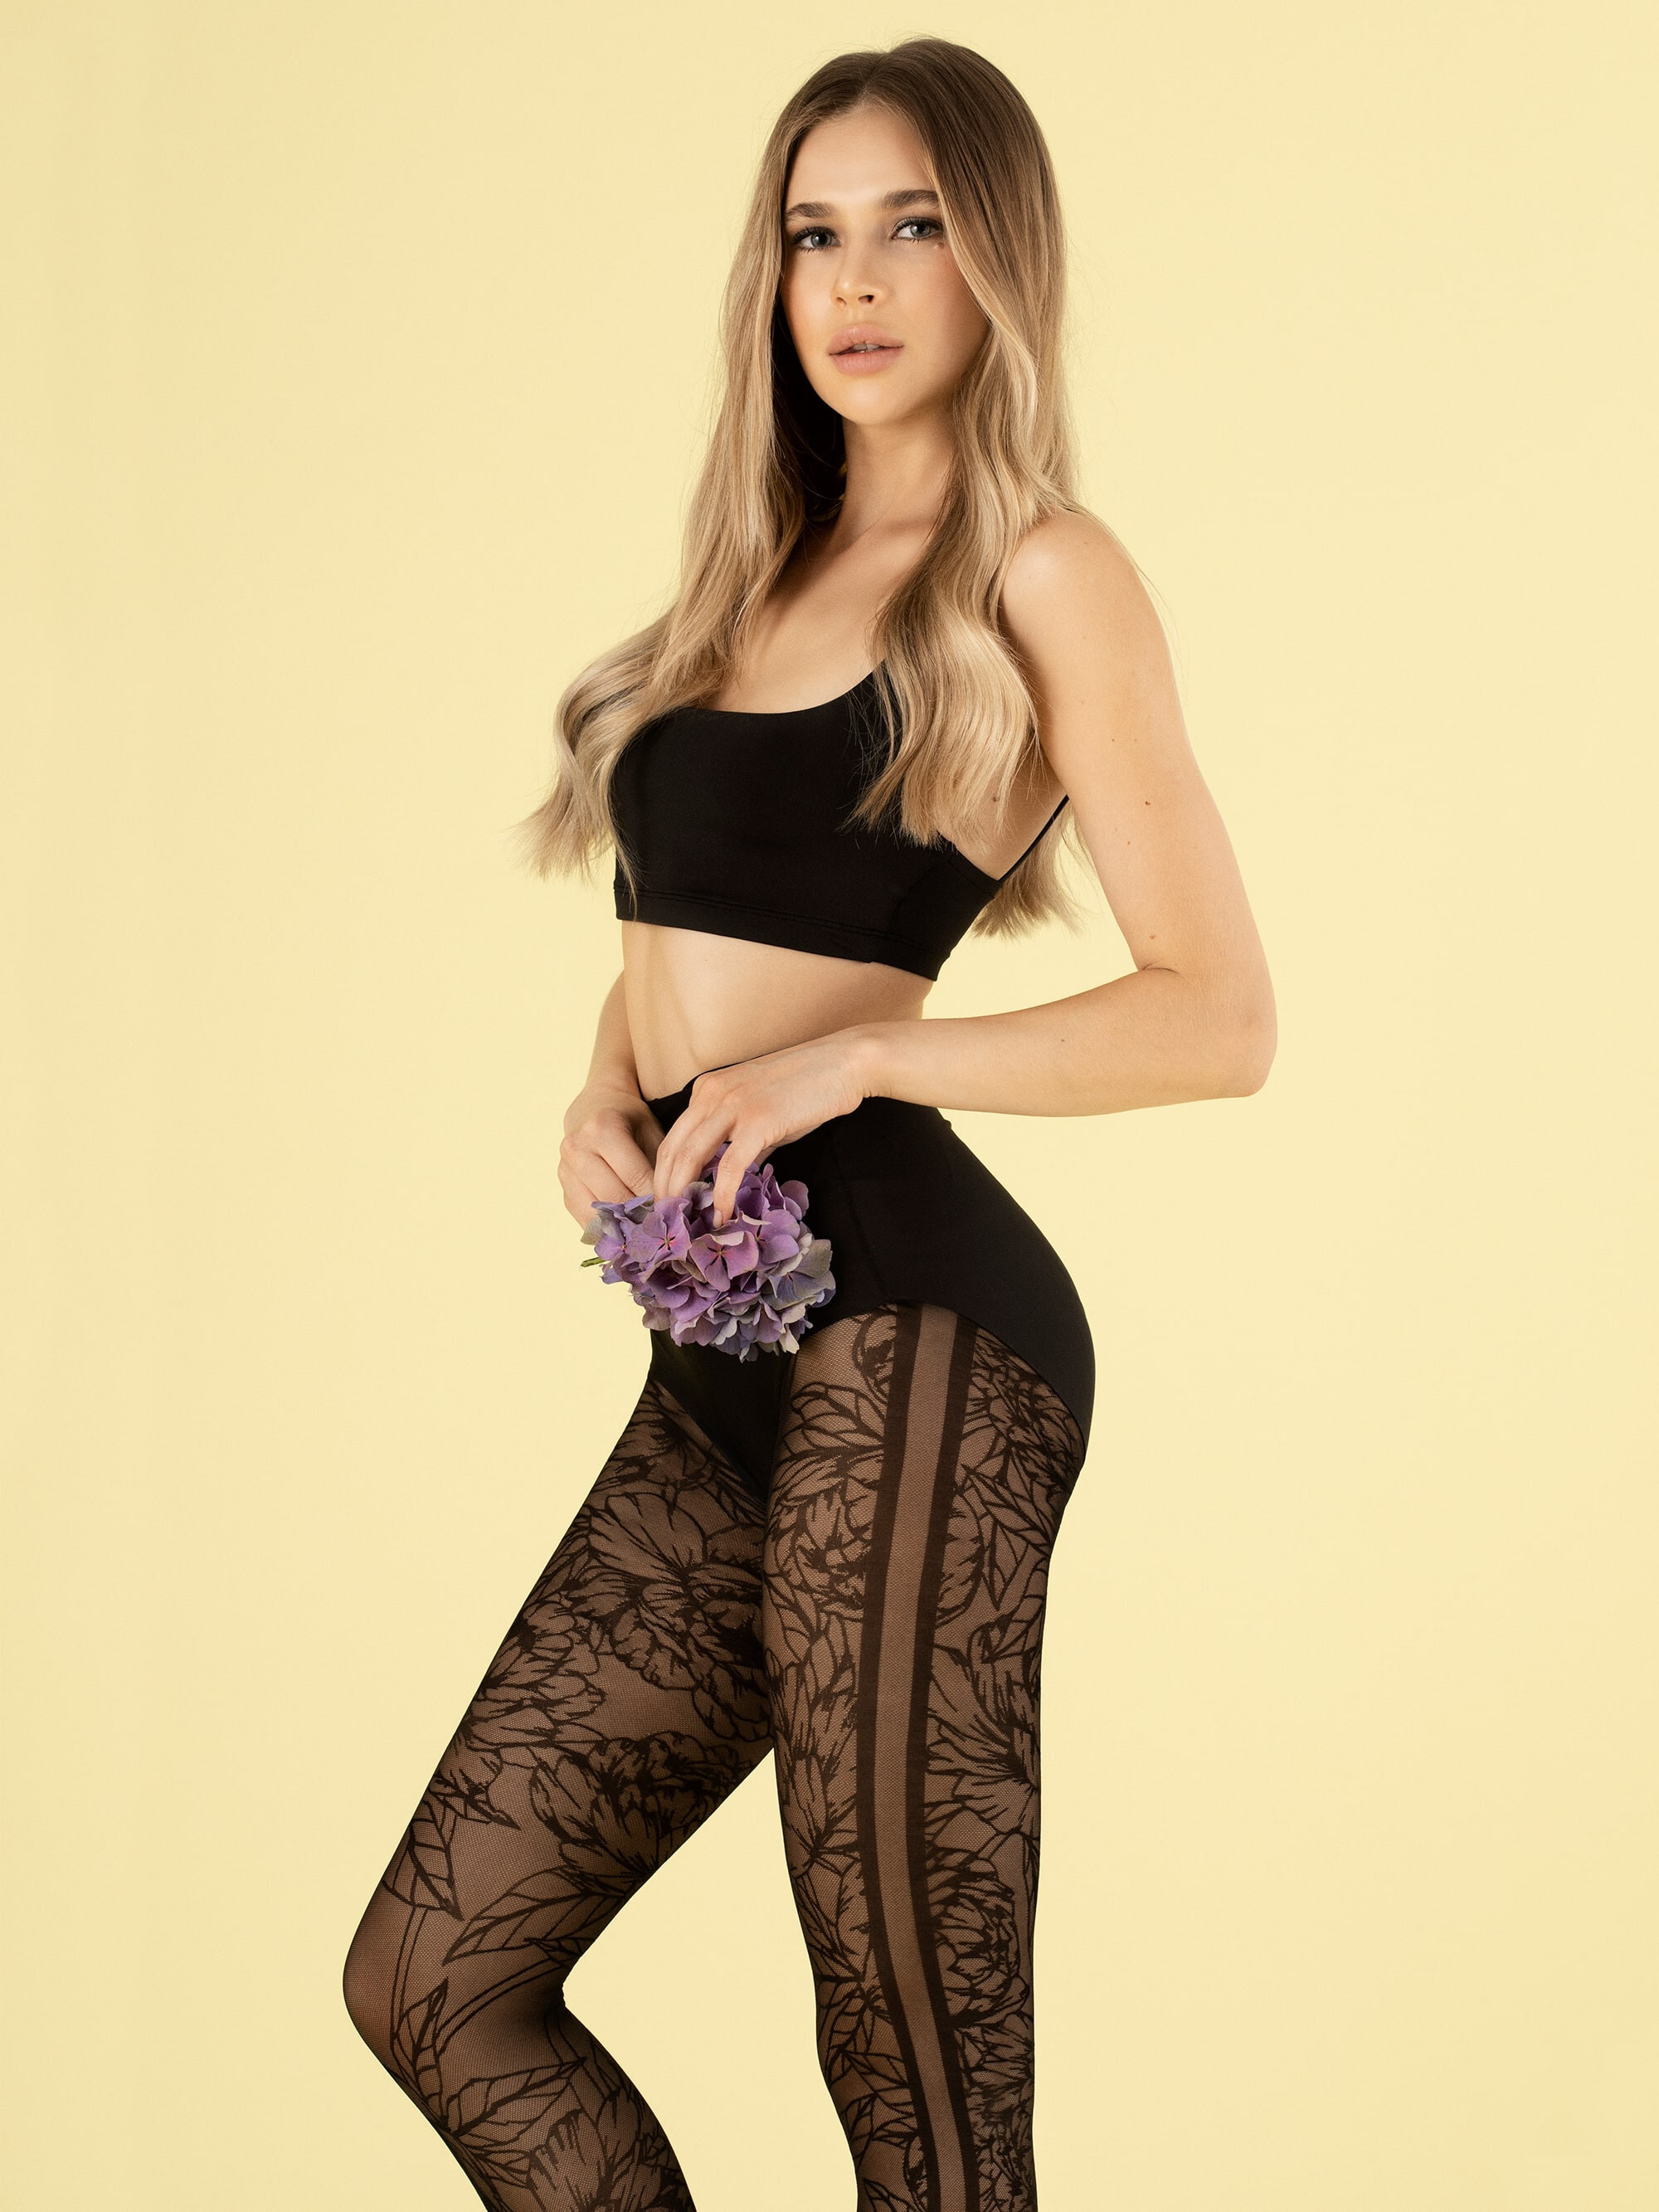 Fiore: Lush Blooms 3D Patterned Tights Fio_lushgarden